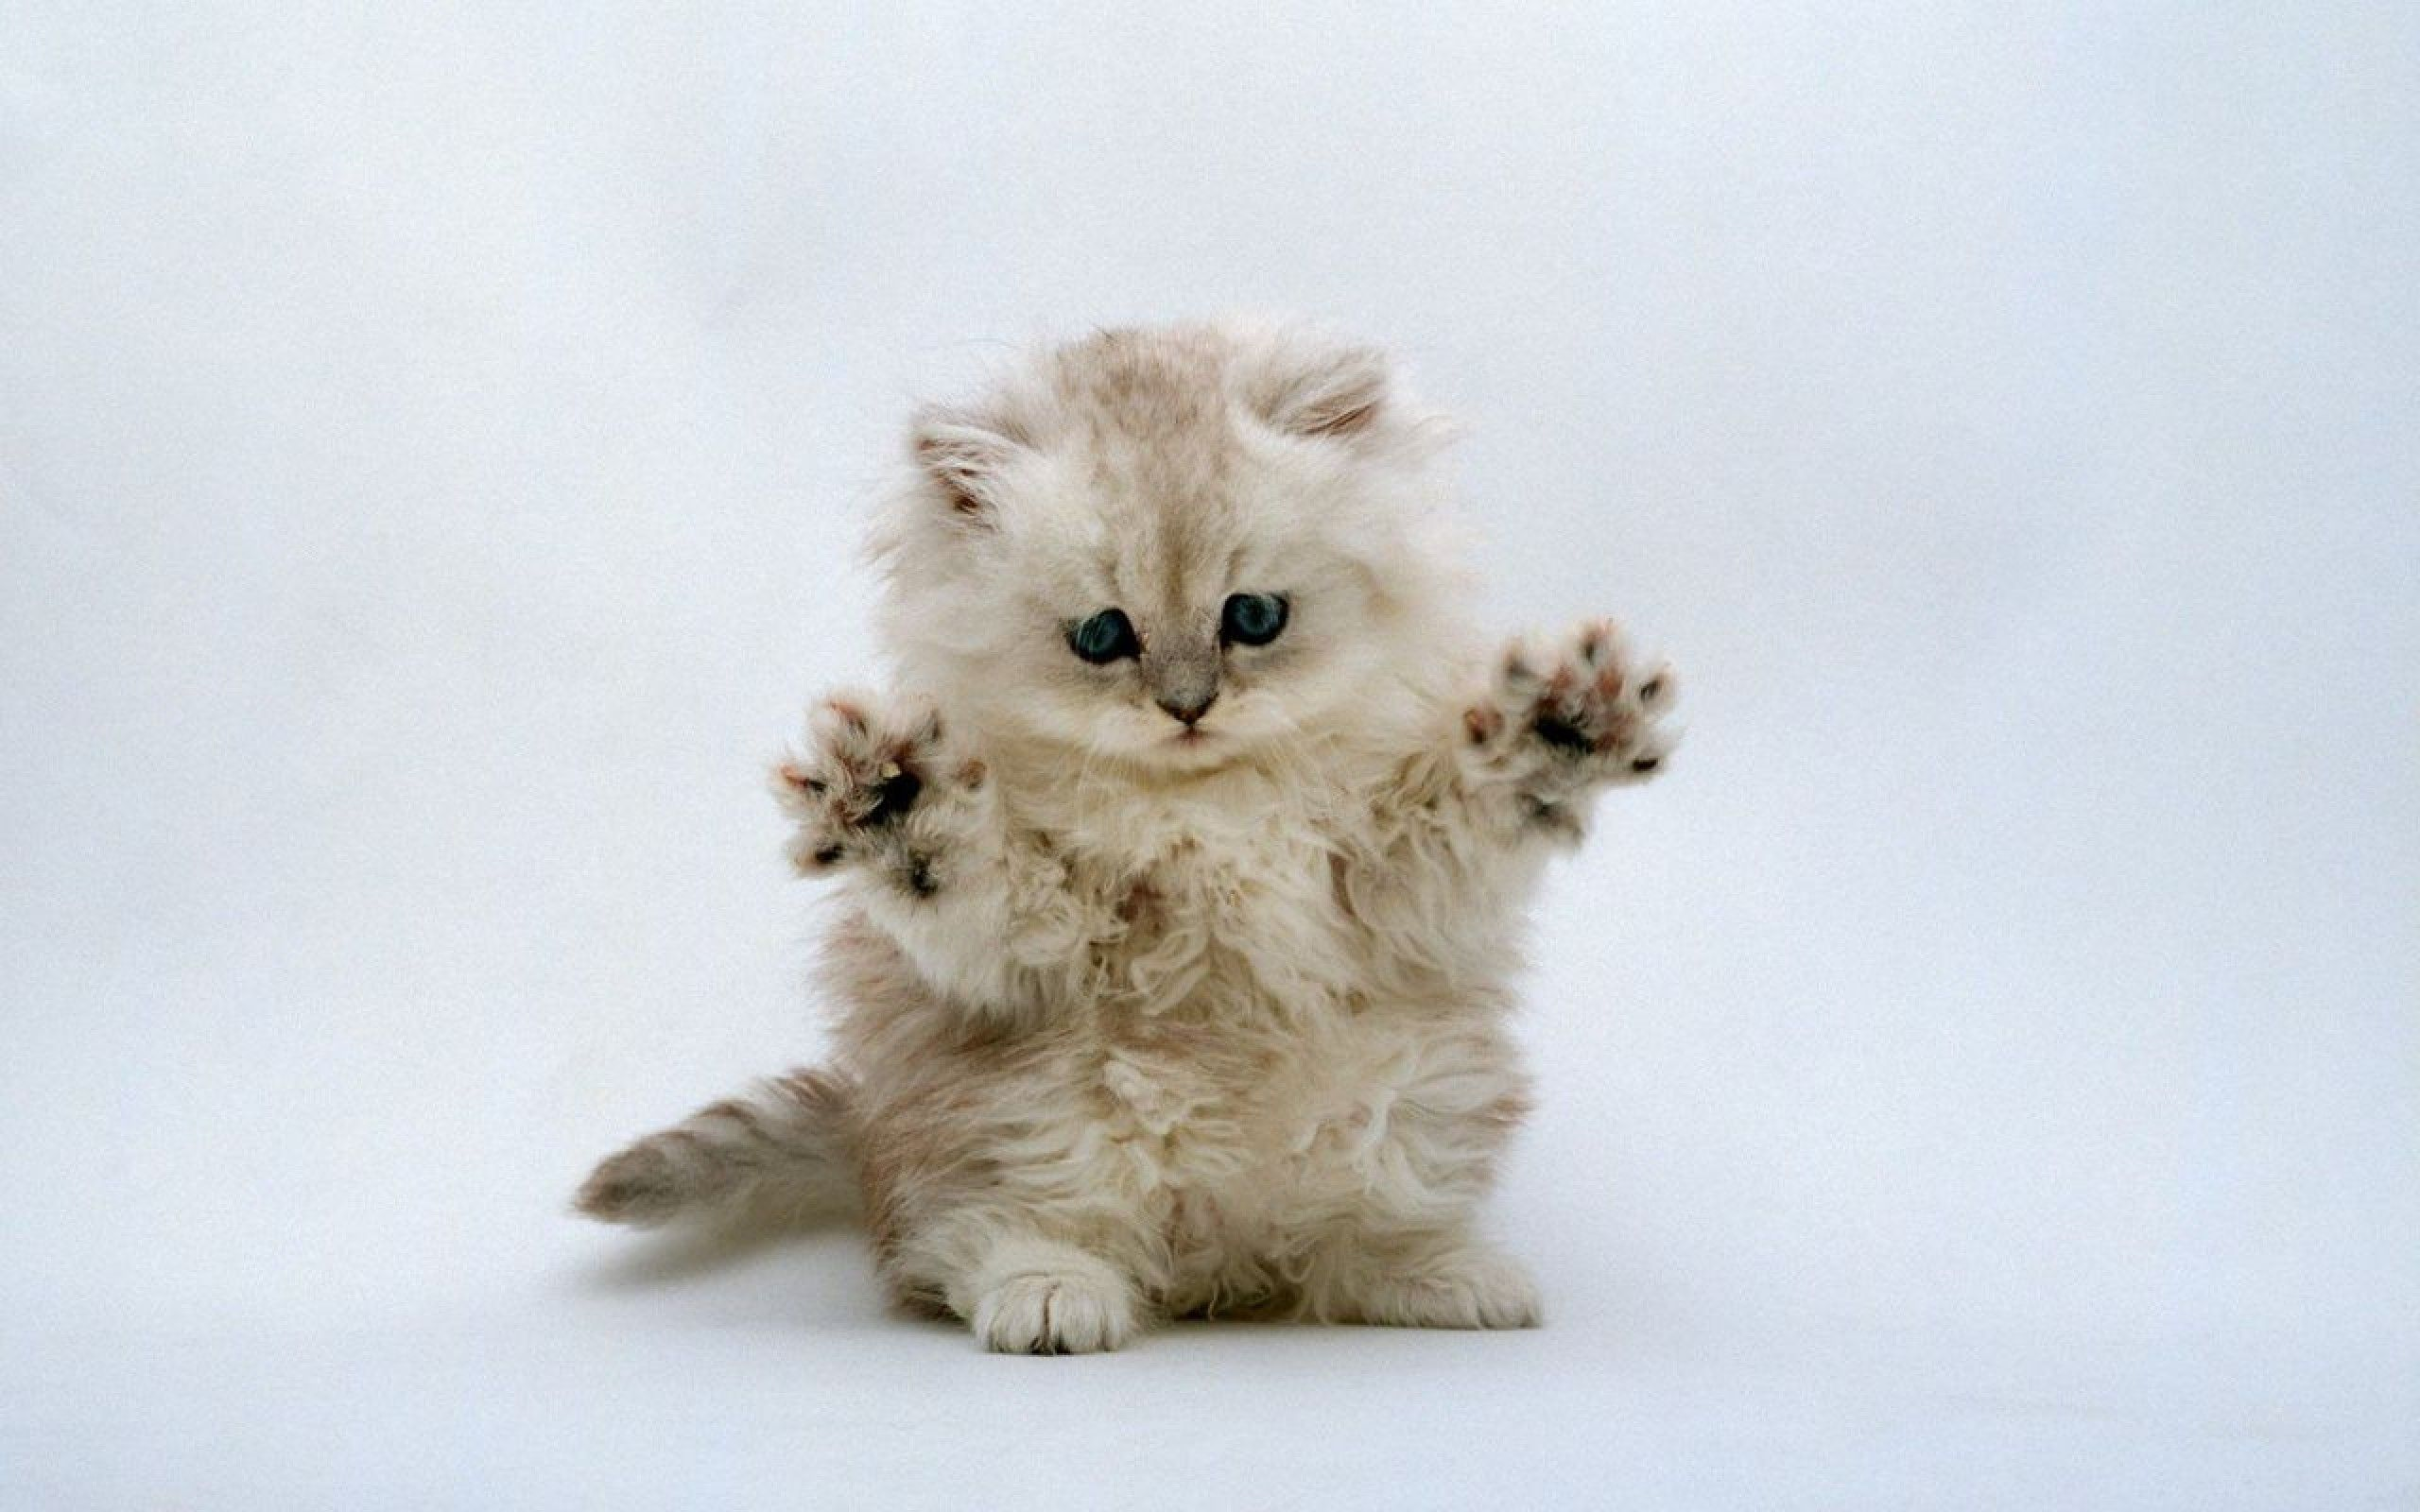 Most Downloaded Cute Kitten Wallpapers Cuddly Animals Cute Cats And Kittens Cute Animals